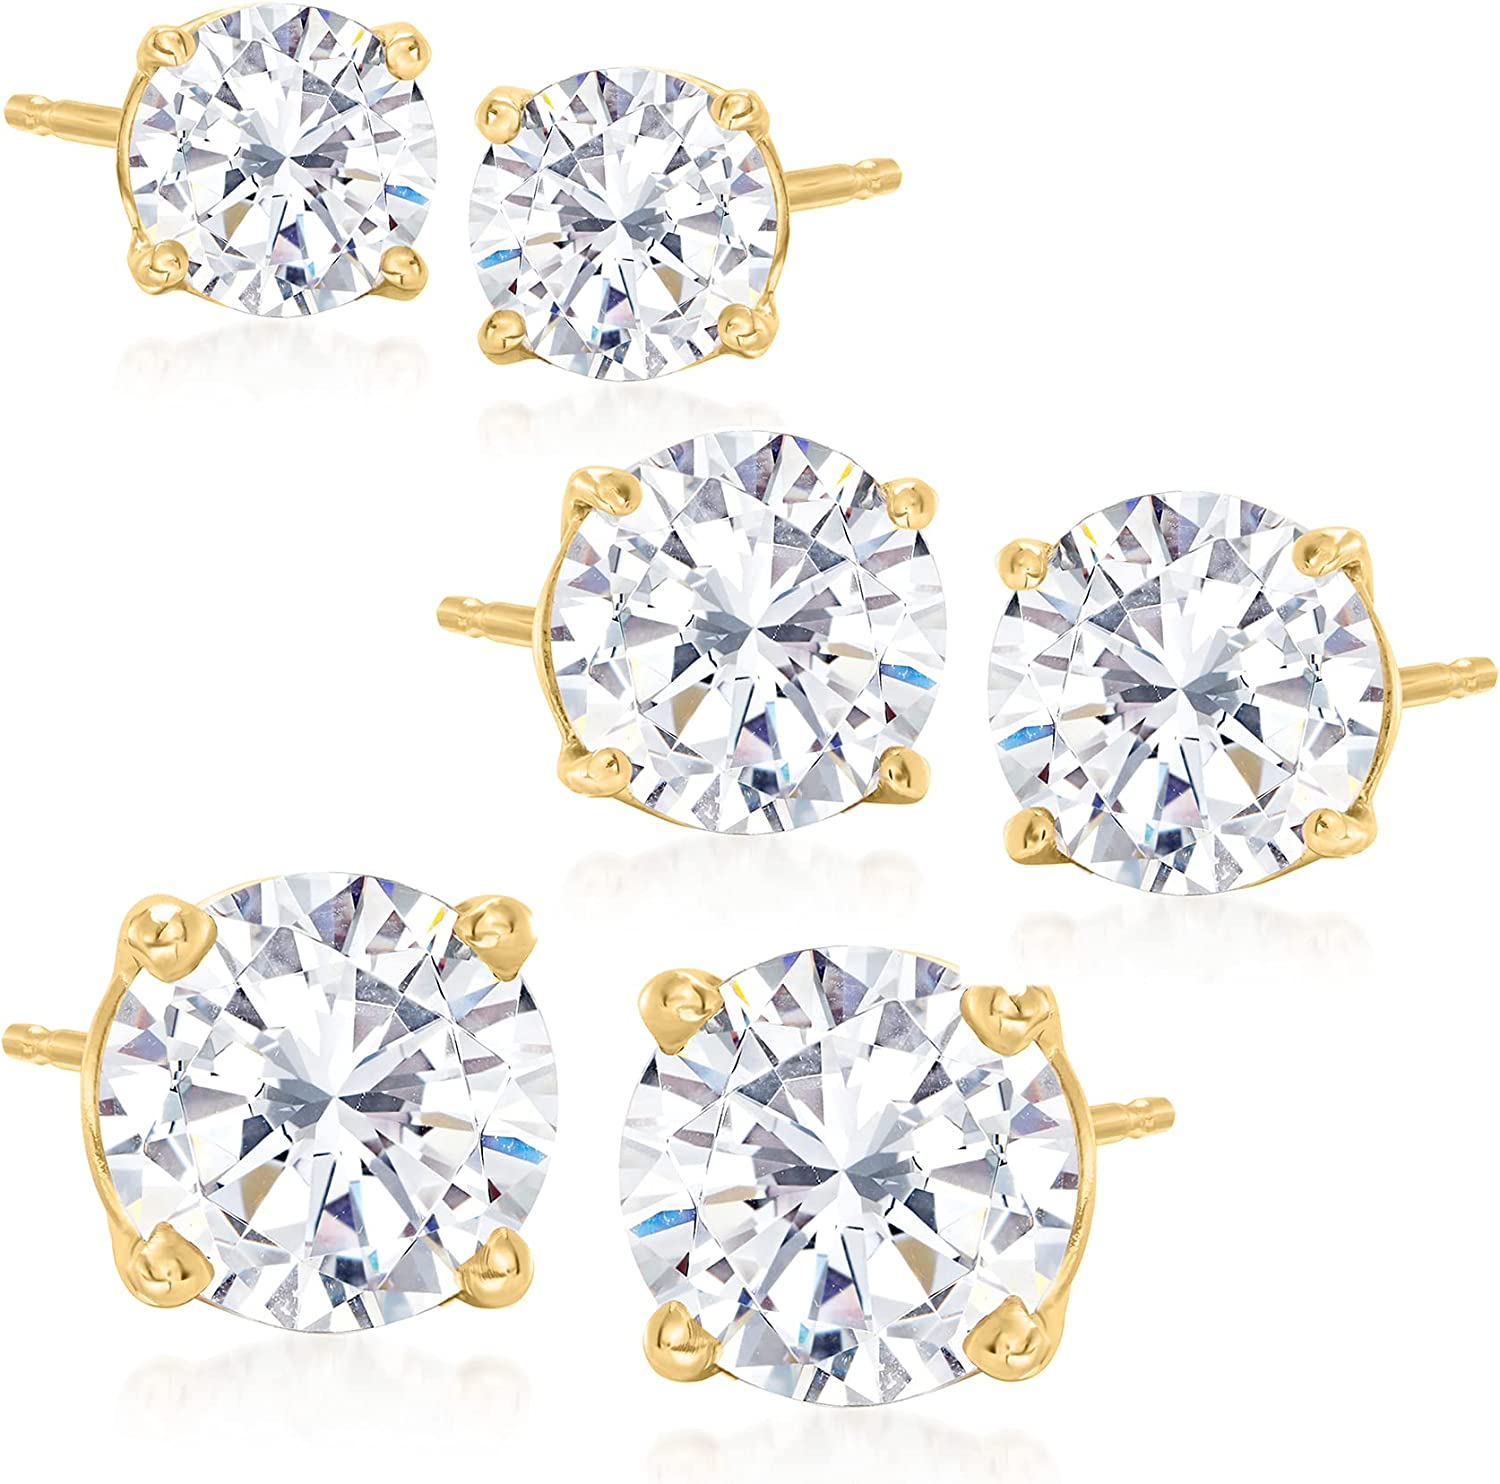 Ross-Simons 6.00 ct. t.w. CZ Jewelry Set: 3 Pairs Of Stud Earrings in 14kt Yellow Gold